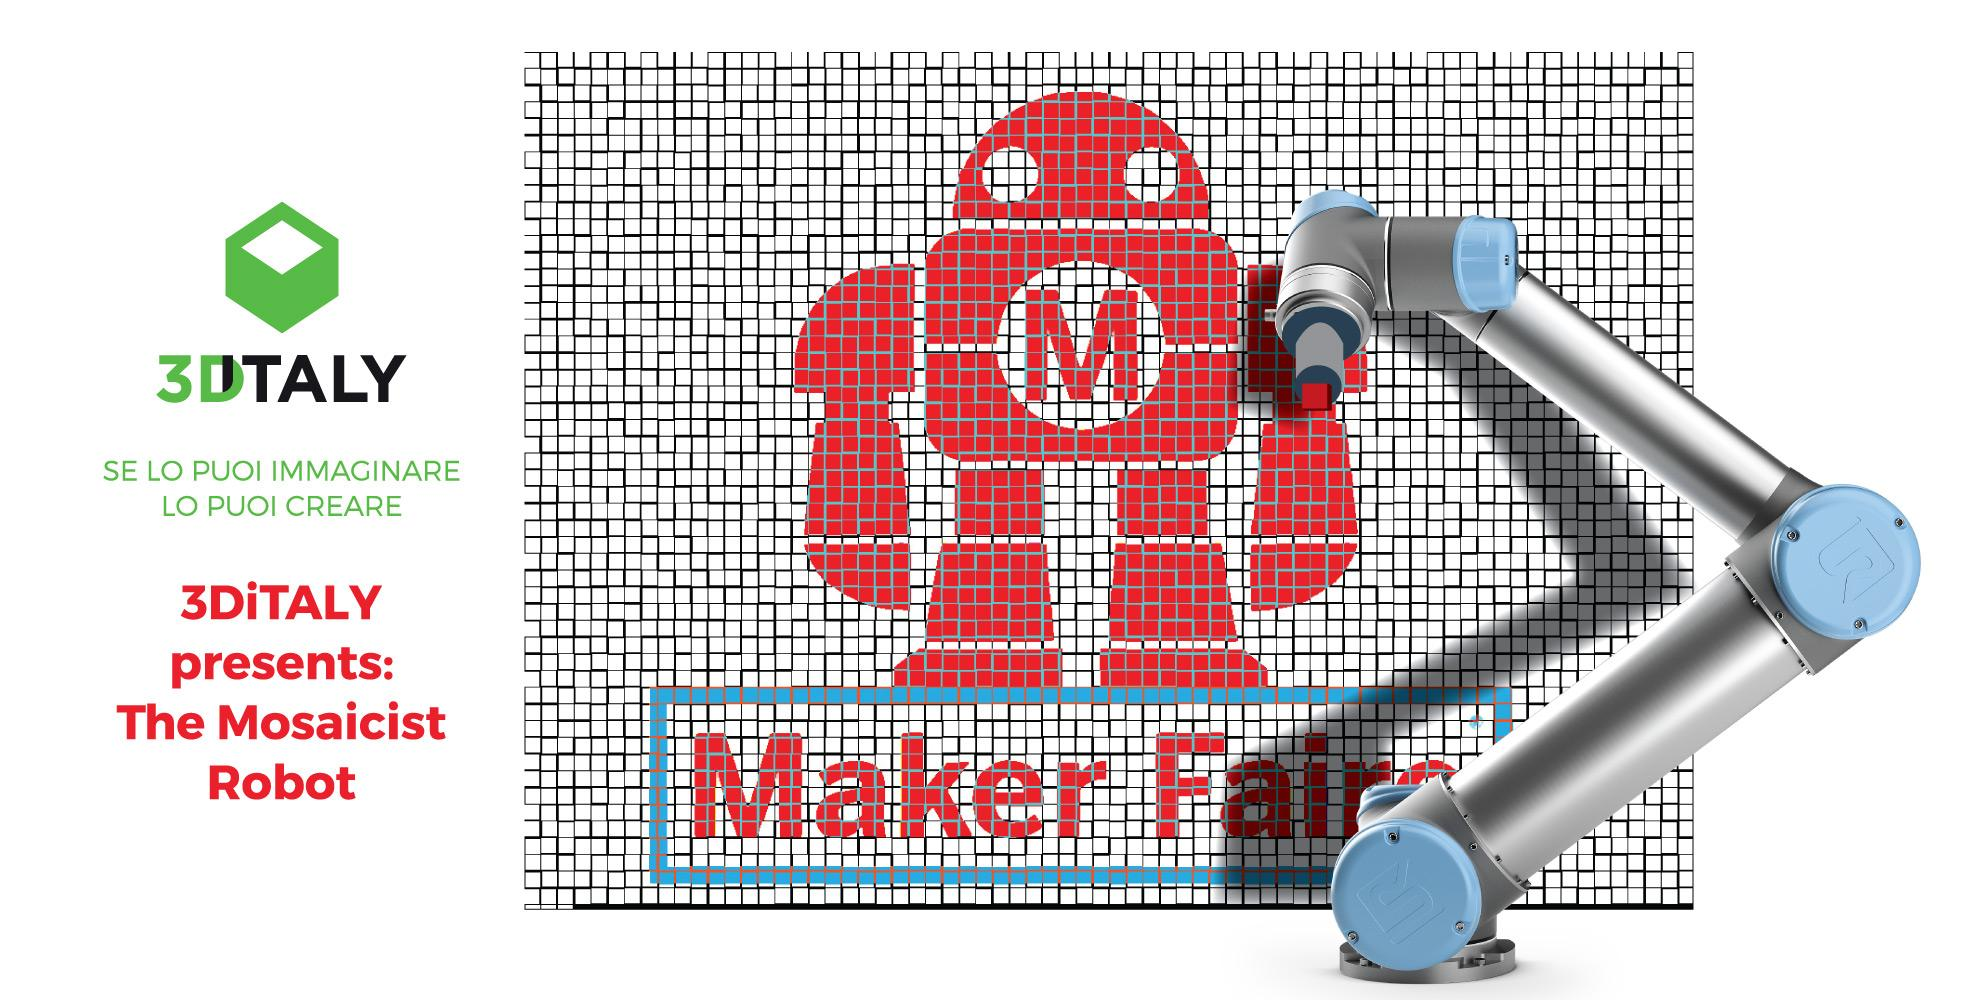 3DiTALY presents: The Mosaicist Robot